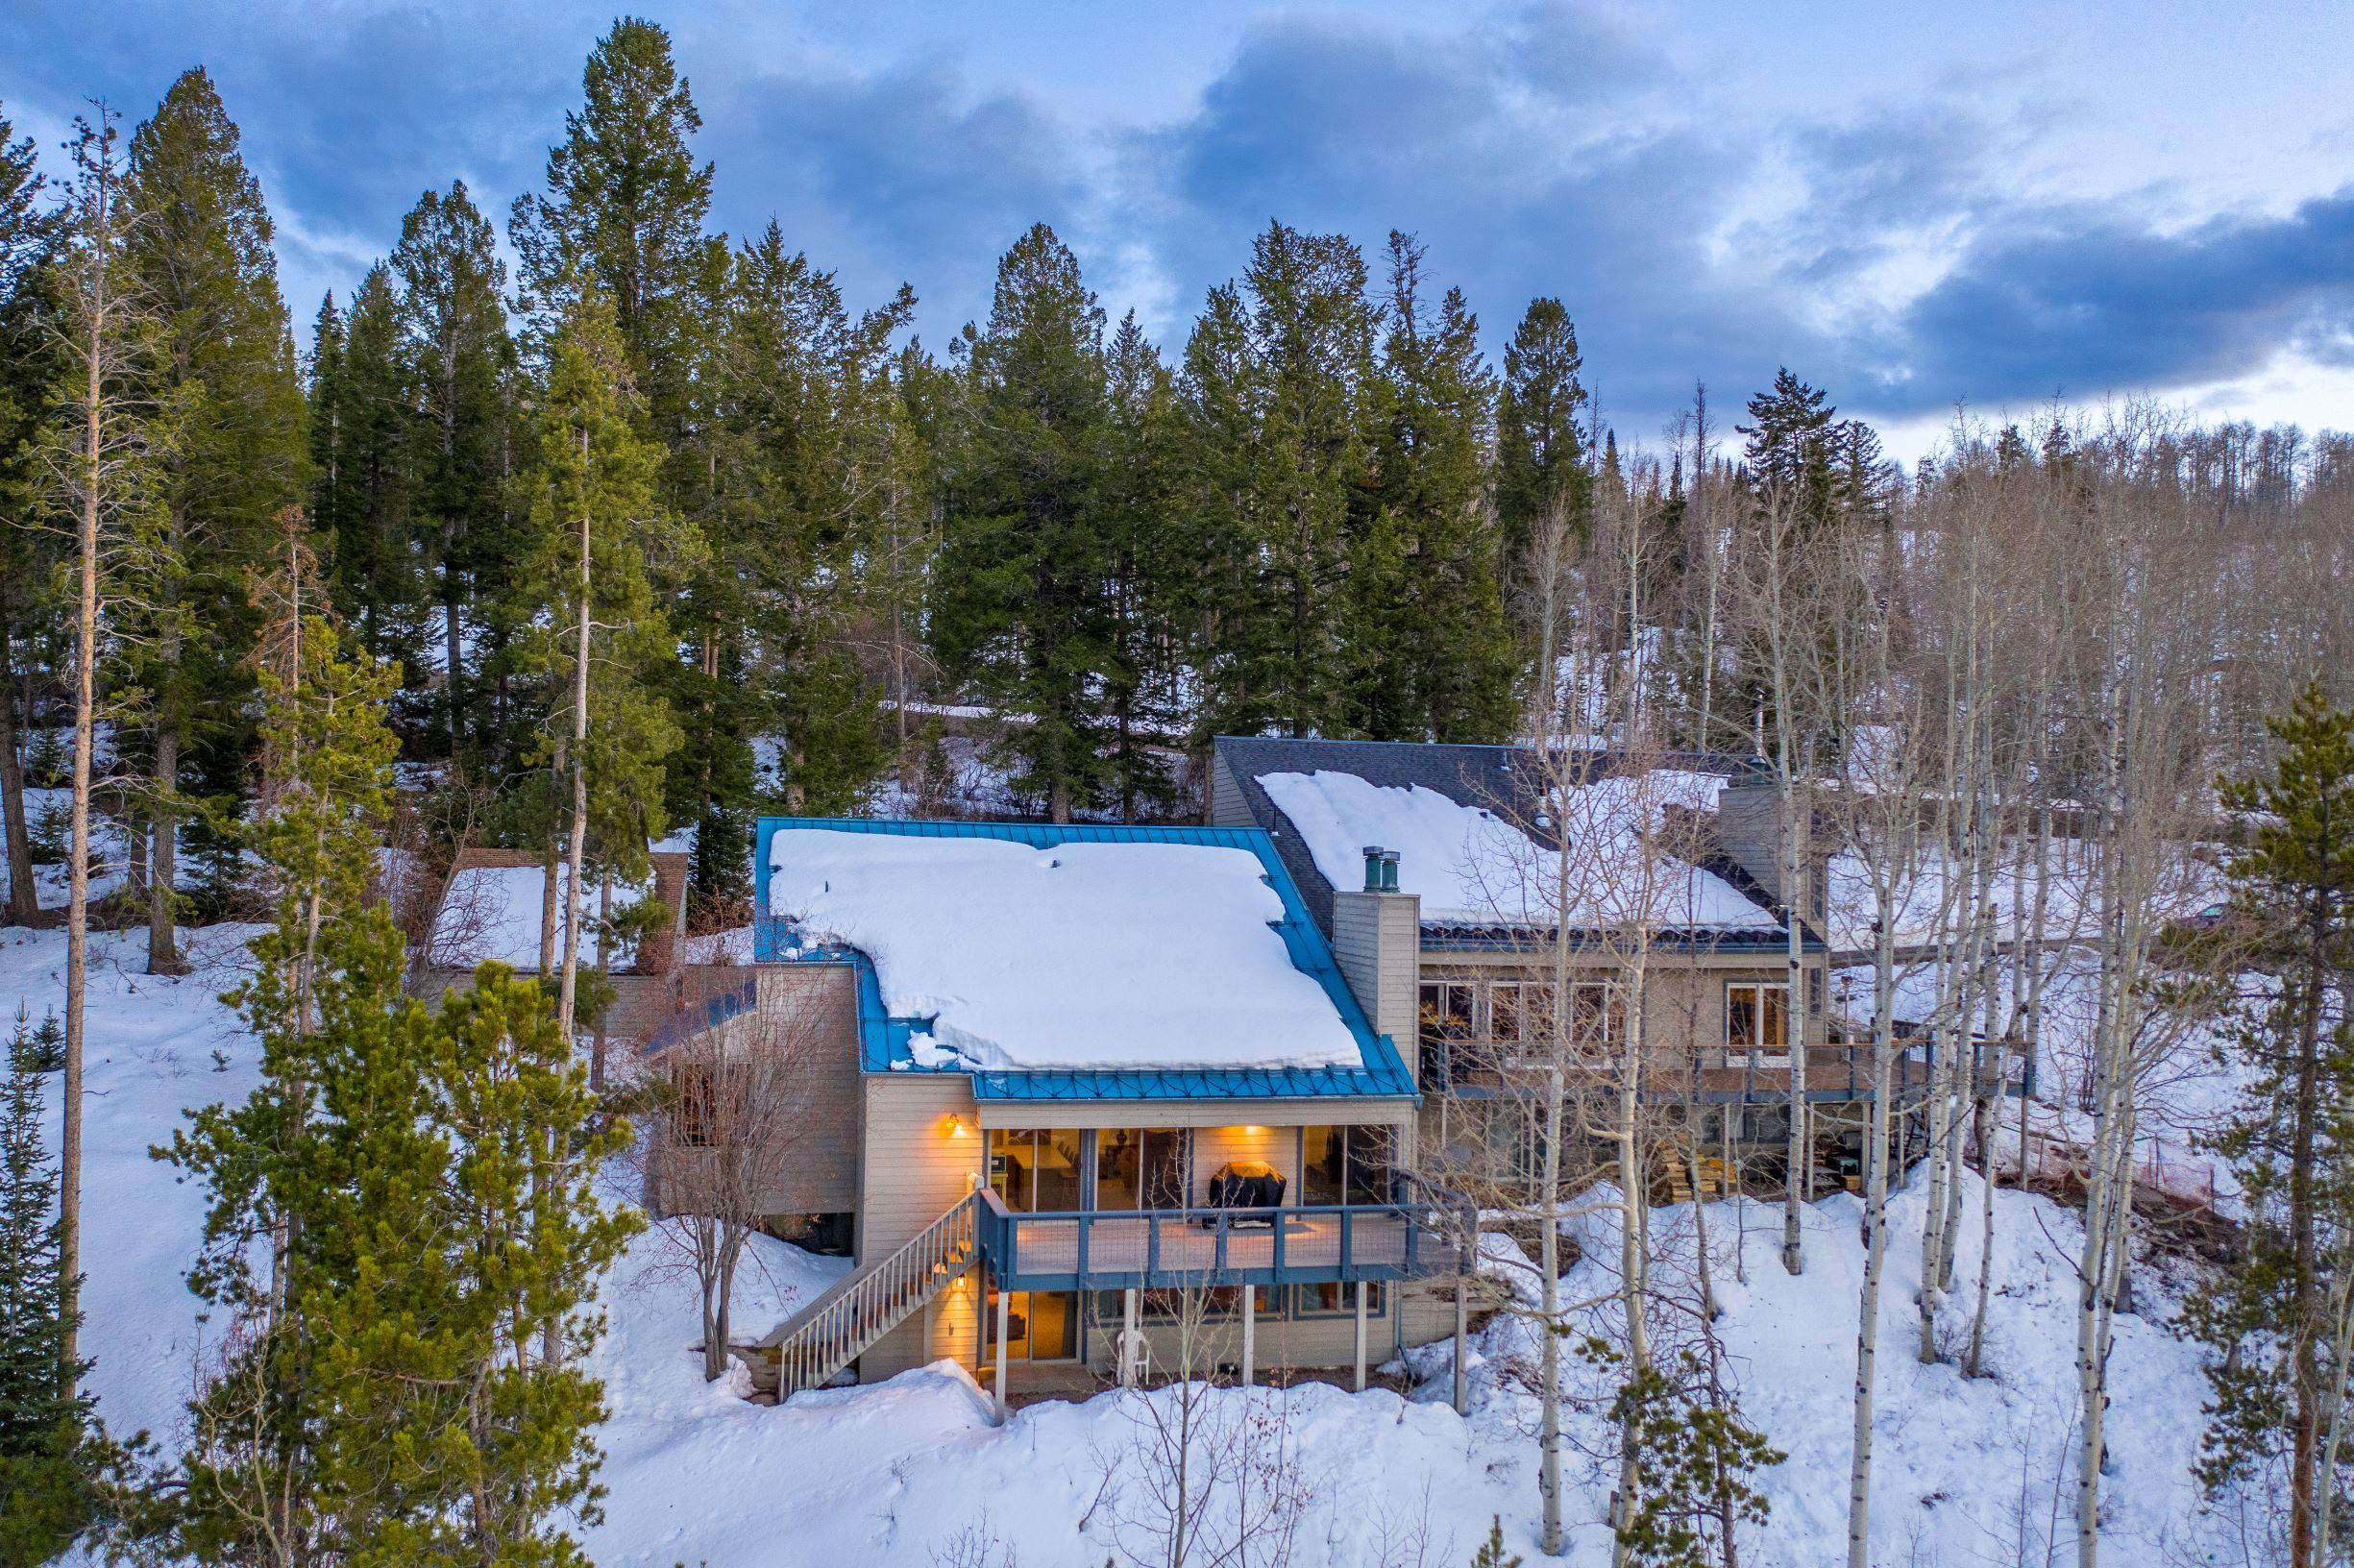 Amazing views abound from this ''cabin in the woods'' on Bellyache Ridge. This peaceful location features open, main floor living, with an expansive deck, 2 wood burning fireplaces and a downstairs rec room. This could be the mountain escape you've been looking for. Call for your private tour!